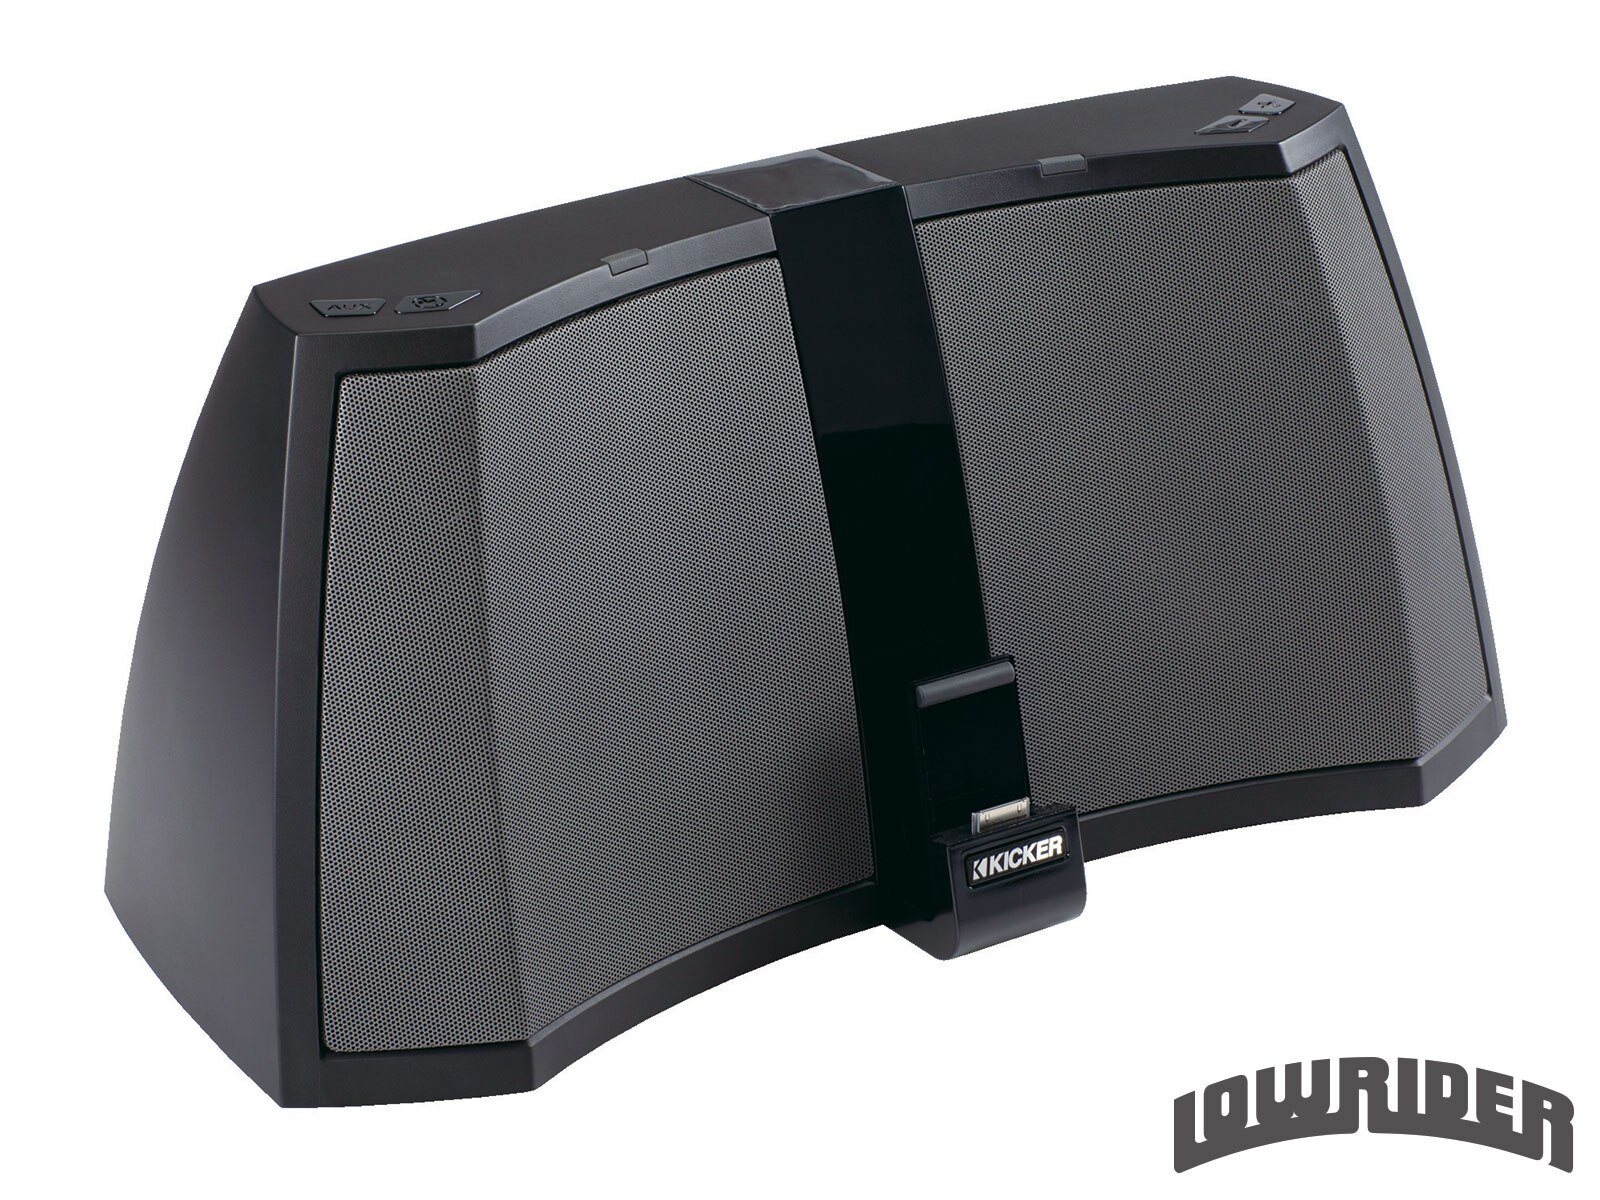 1302-lrmp-01-o-kicker-meguiars-becool-kicker-amphitheater-high-performance-audio-system1